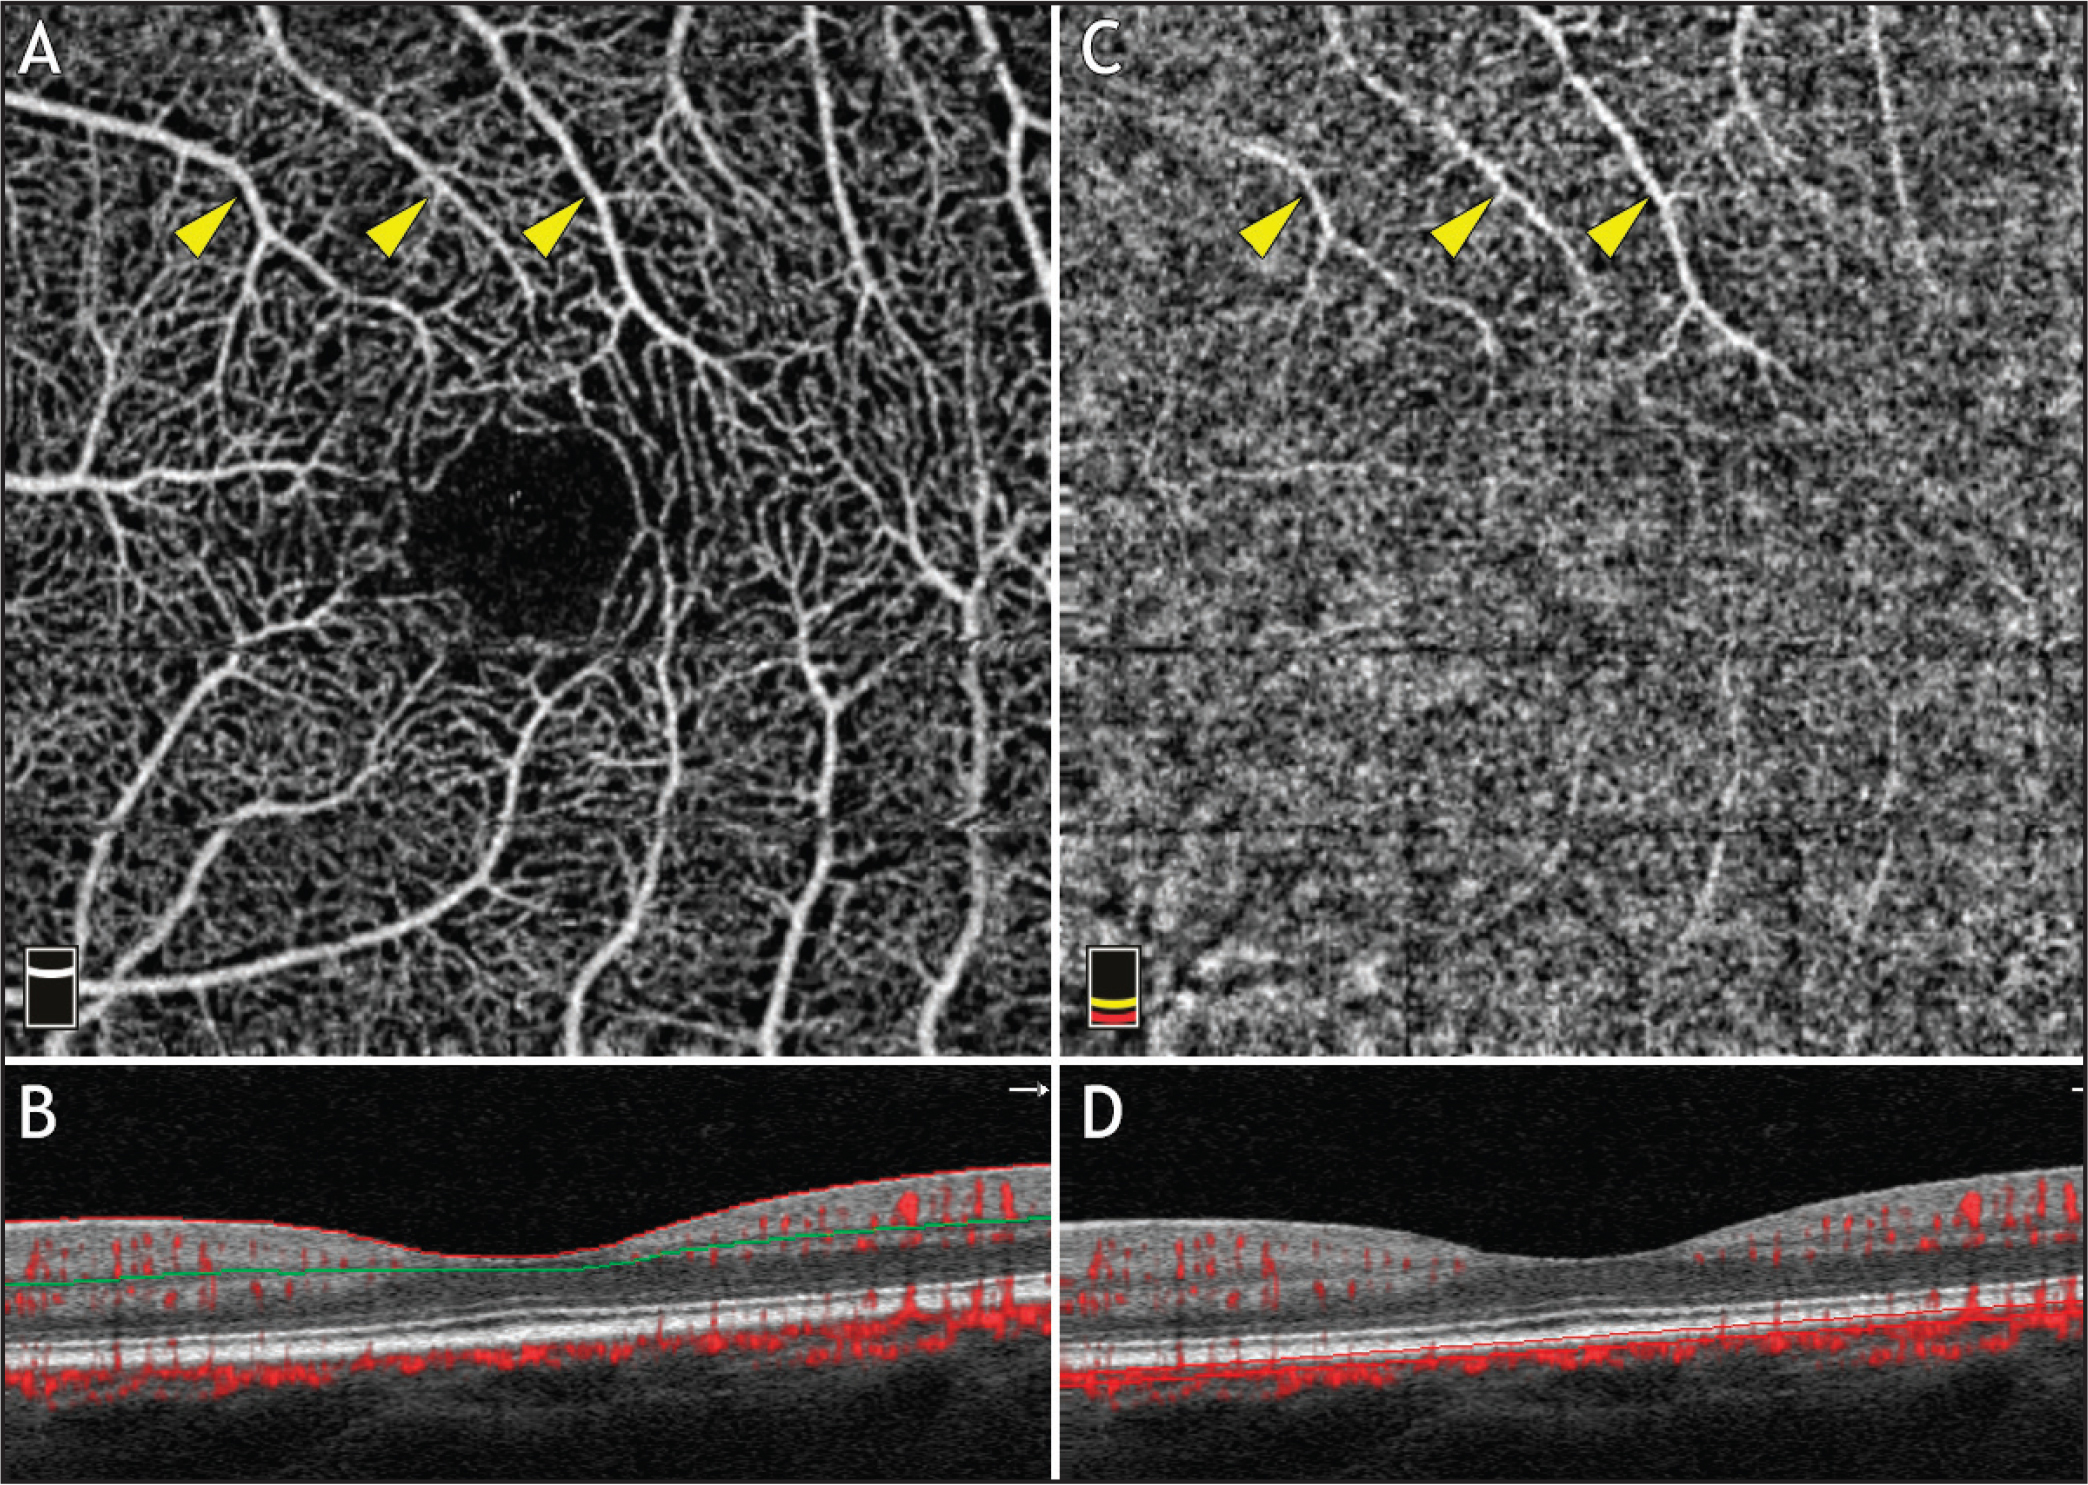 Optical coherence tomography angiography (OCTA) (Avanti; Optovue, Fremont, CA) projection artifacts. (A) Superficial plexus segmentation shows normal vasculature (yellow arrowheads). (B) OCT B-scan with superficial segmentation delineated by the red and green lines. (C) Choriocapillaris (CC) segmentation shows projection artifact from superficial vessels (yellow arrowheads). (D) OCT B-scan with CC segmentation delineated by two parallel red lines.